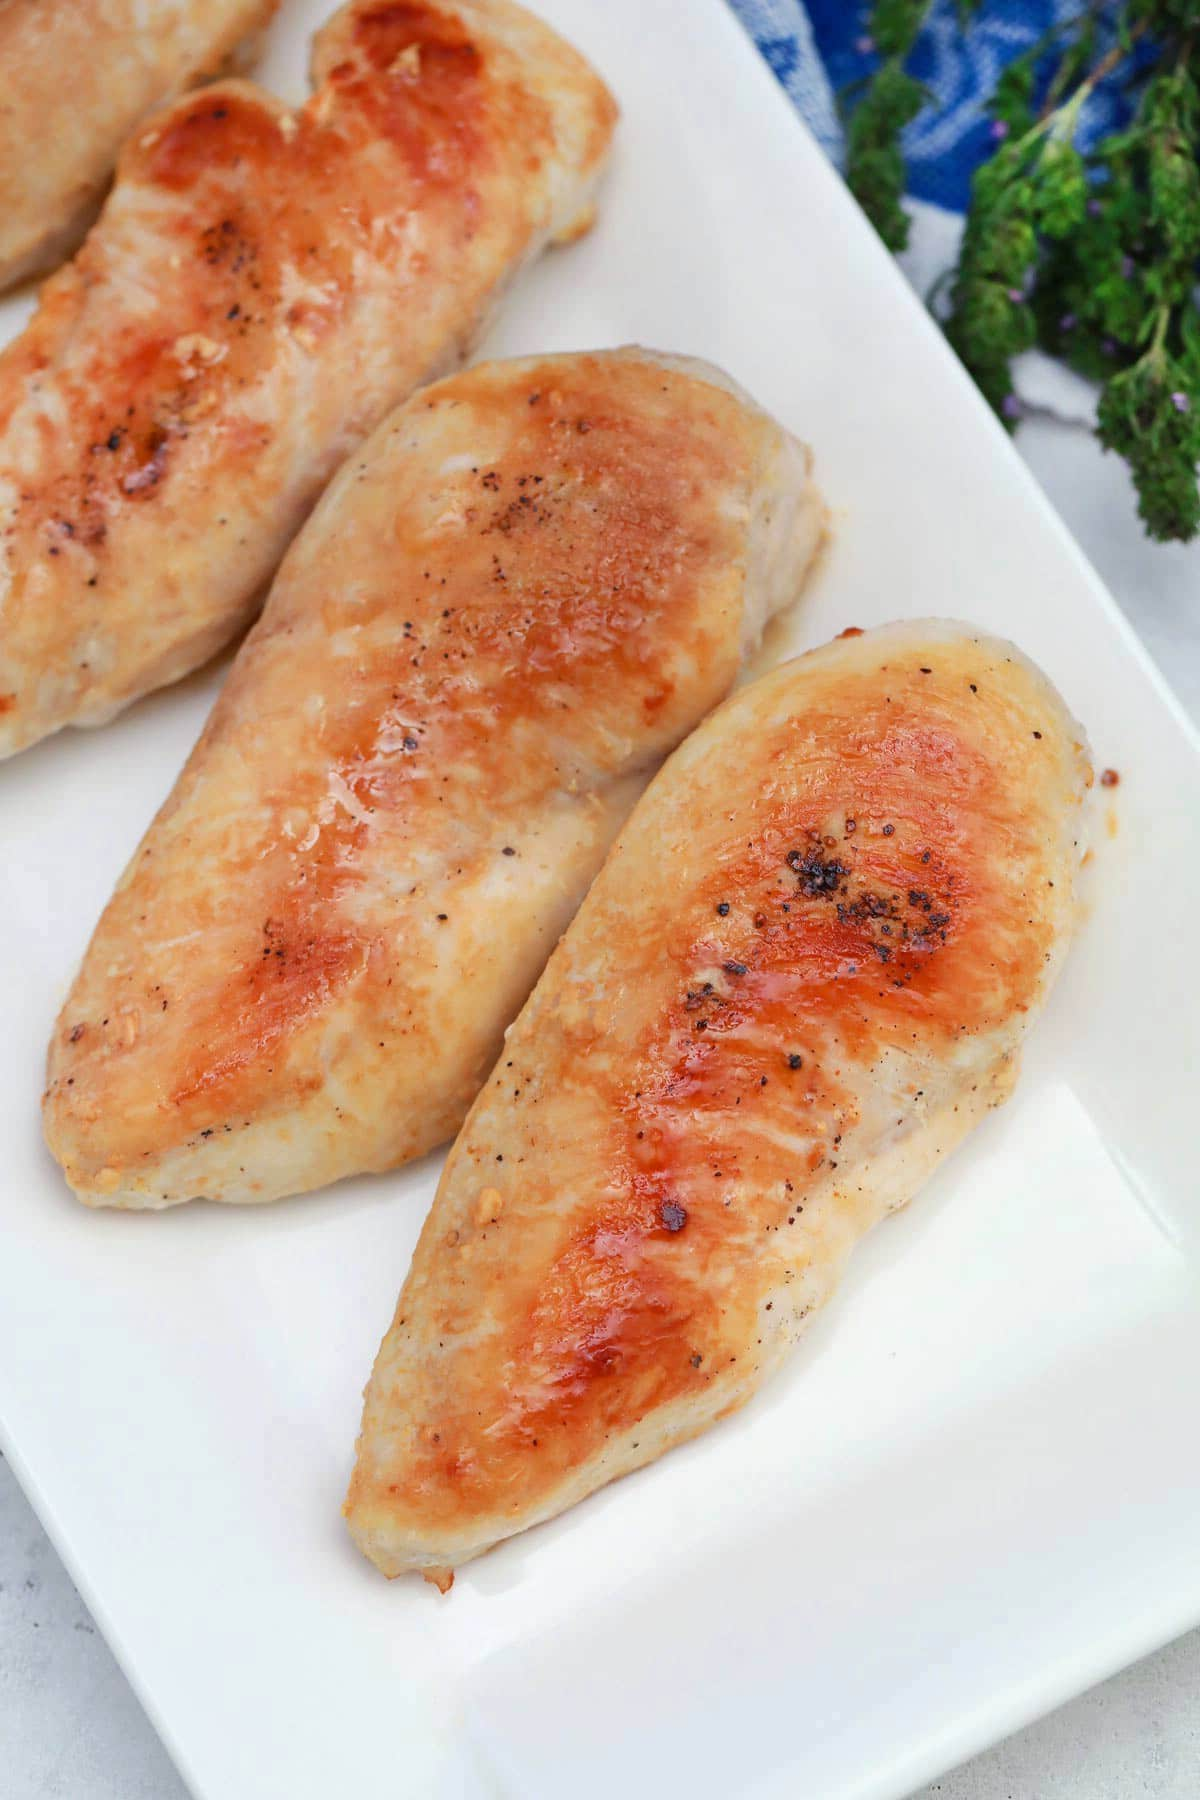 Cooked chicken breasts laying on white platter